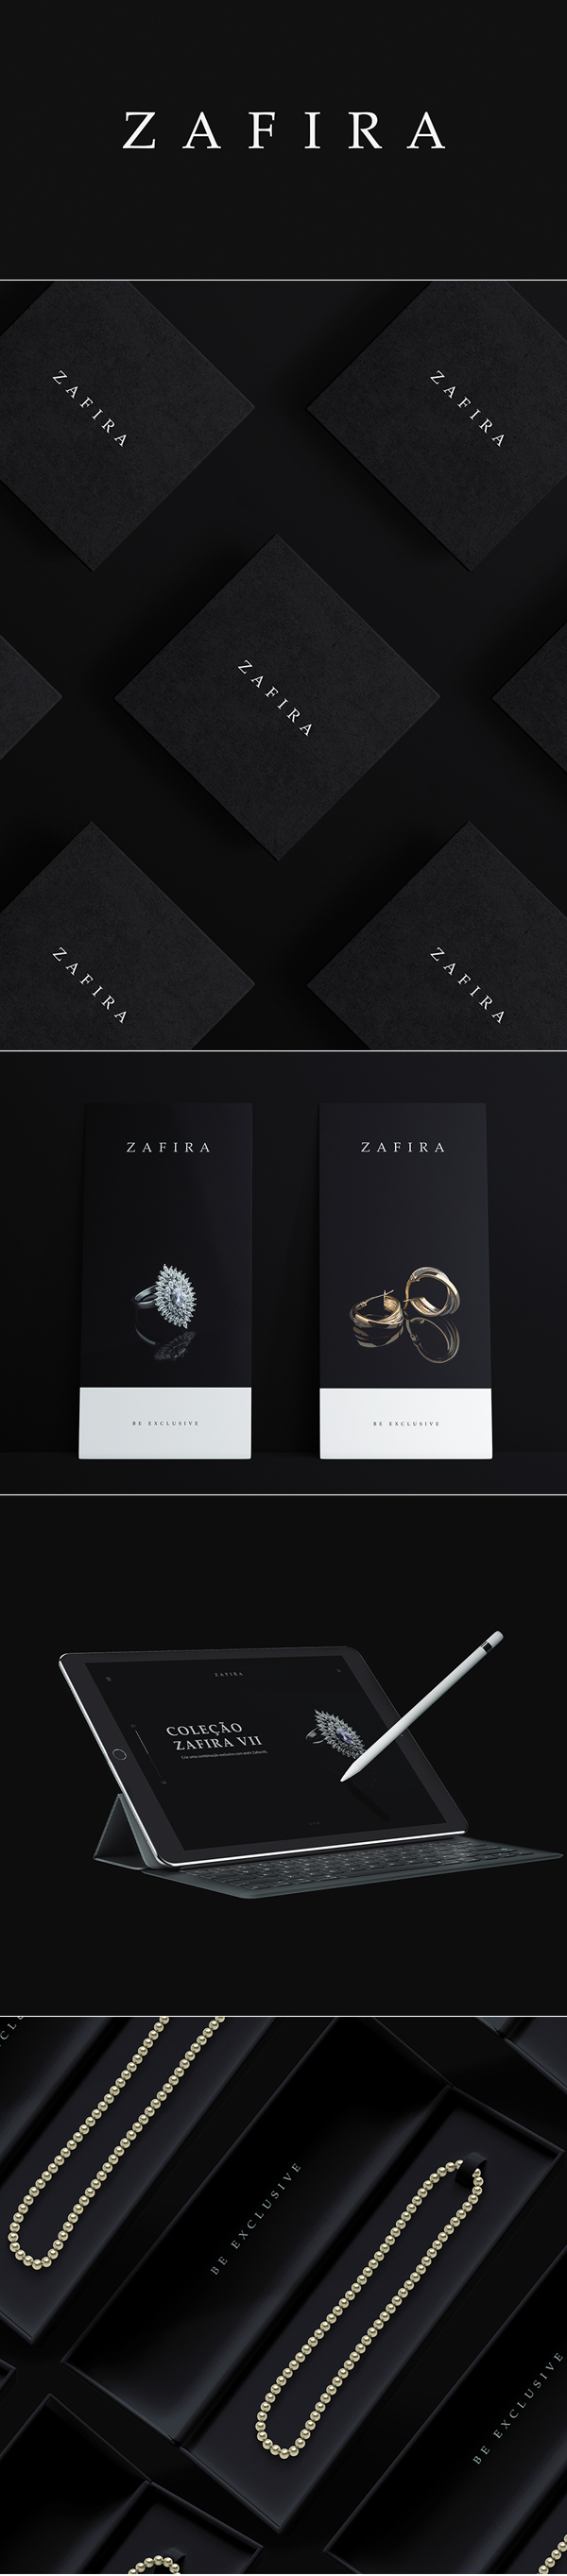 Zafira - Identidade Visual by check dsgn